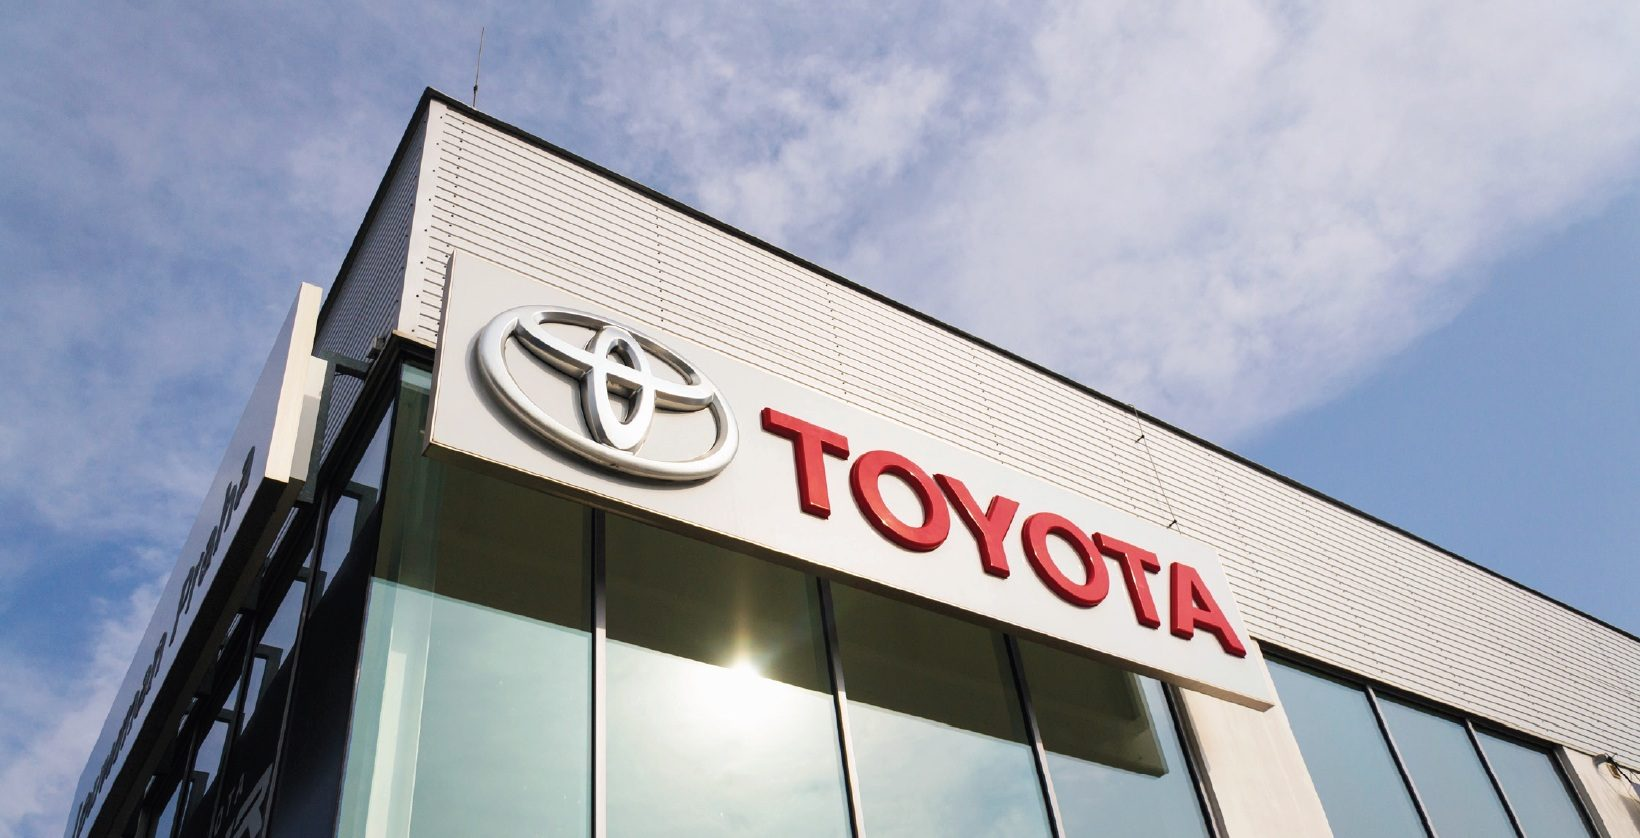 Toyota Finance New Zealand Robotic Process Automation